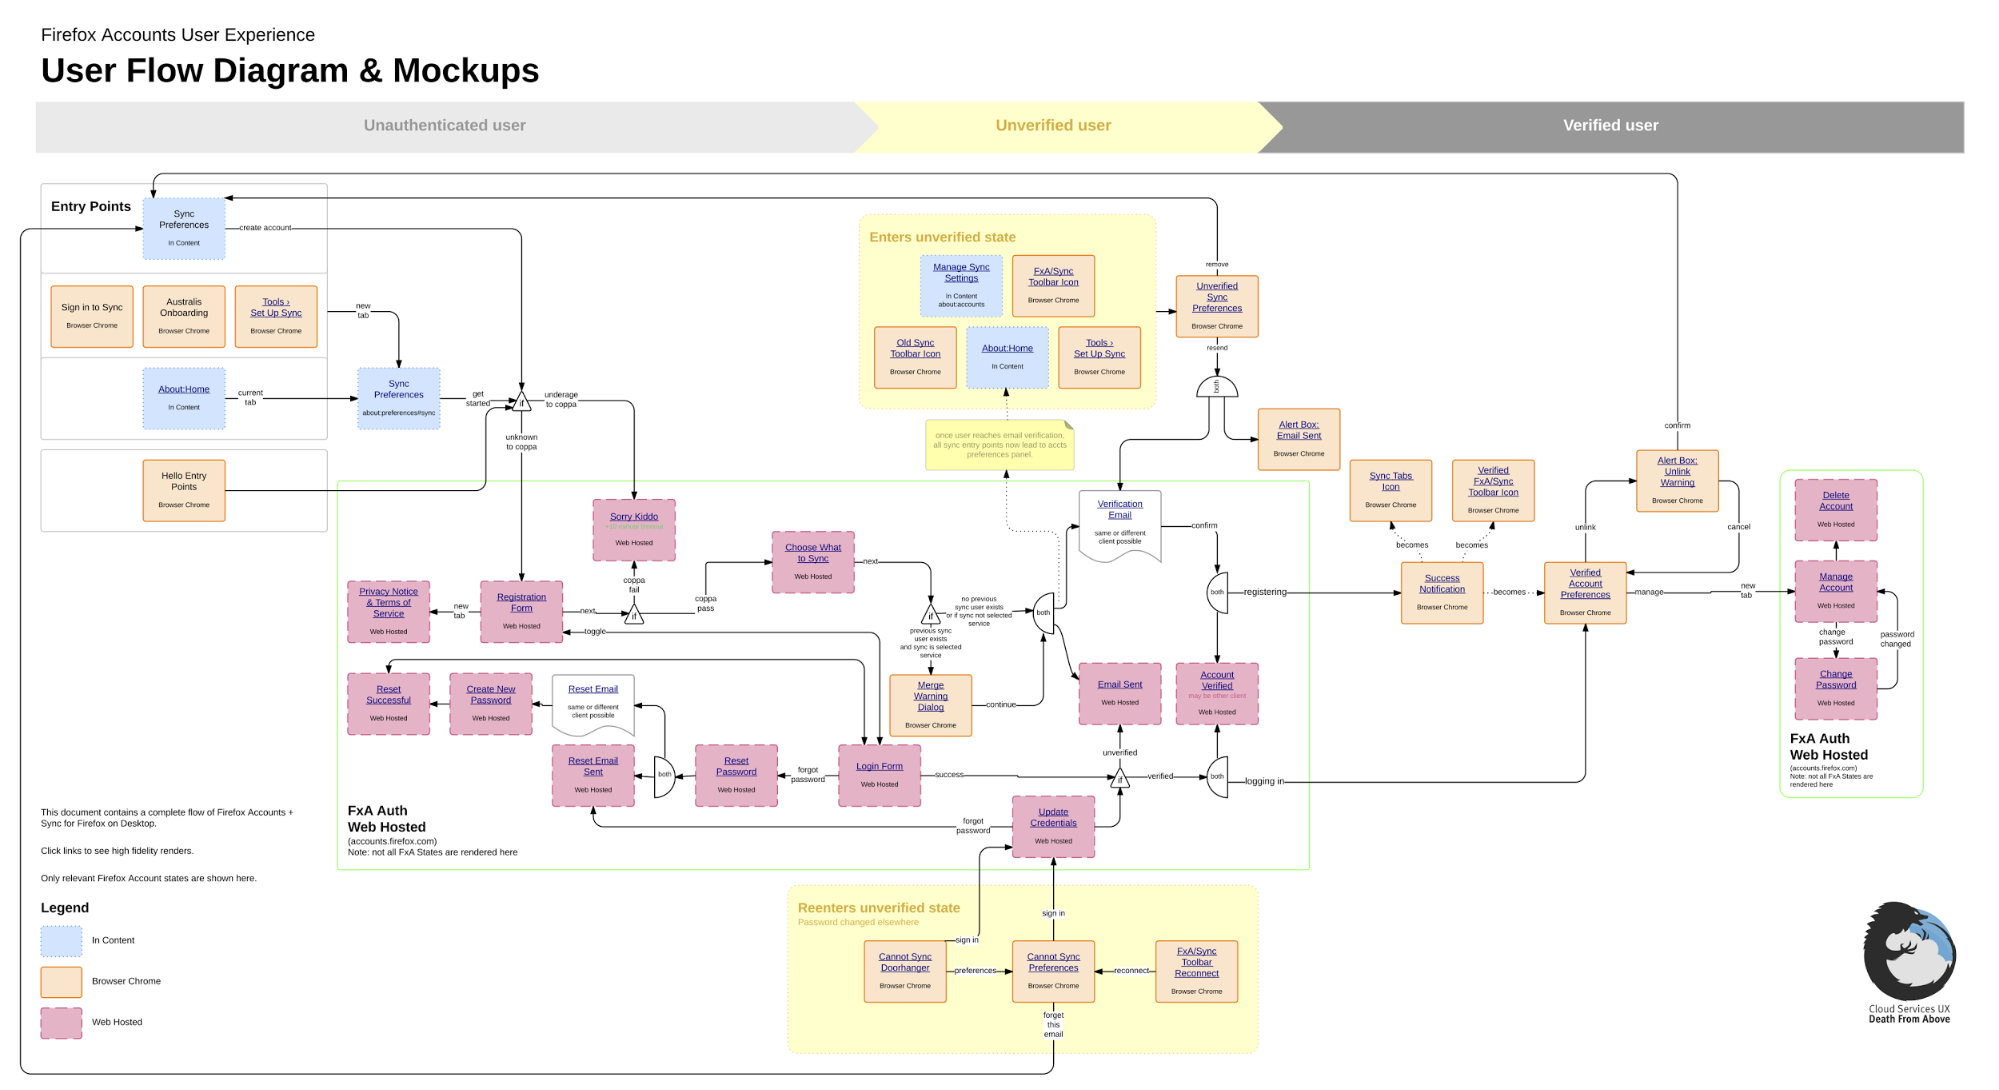 user interaction flow diagram 1997 ford f250 powerstroke wiring mozilla 39s with graphics in dropbox